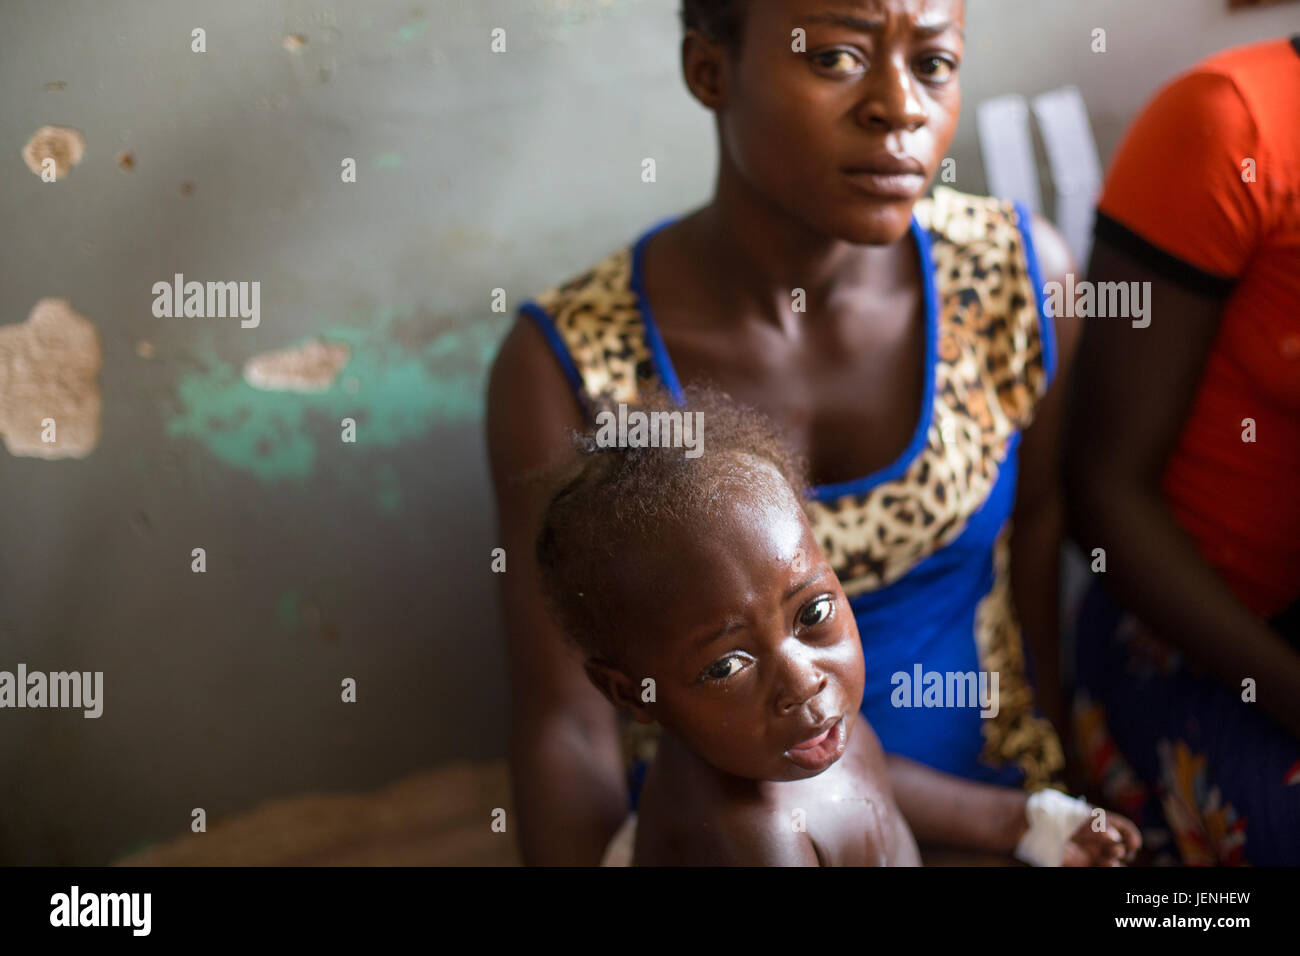 Patients wait to be seen at an underserved hospital in Bundibugyo, Uganda. Stock Photo